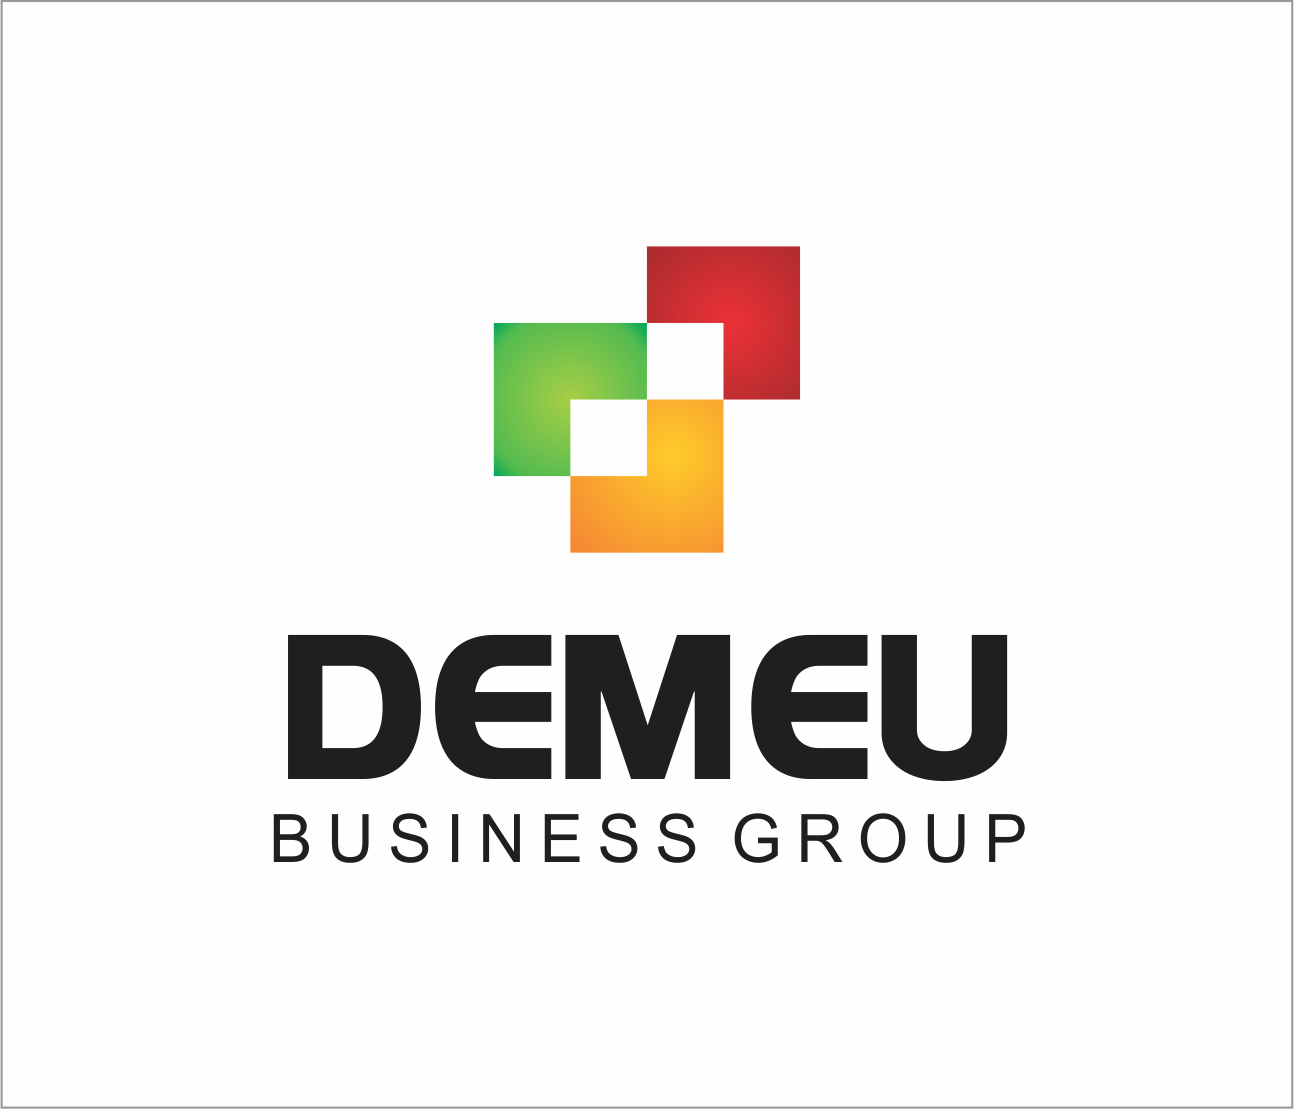 Logo Design by Armada Jamaluddin - Entry No. 157 in the Logo Design Contest Captivating Logo Design for DEMEU Business Group.